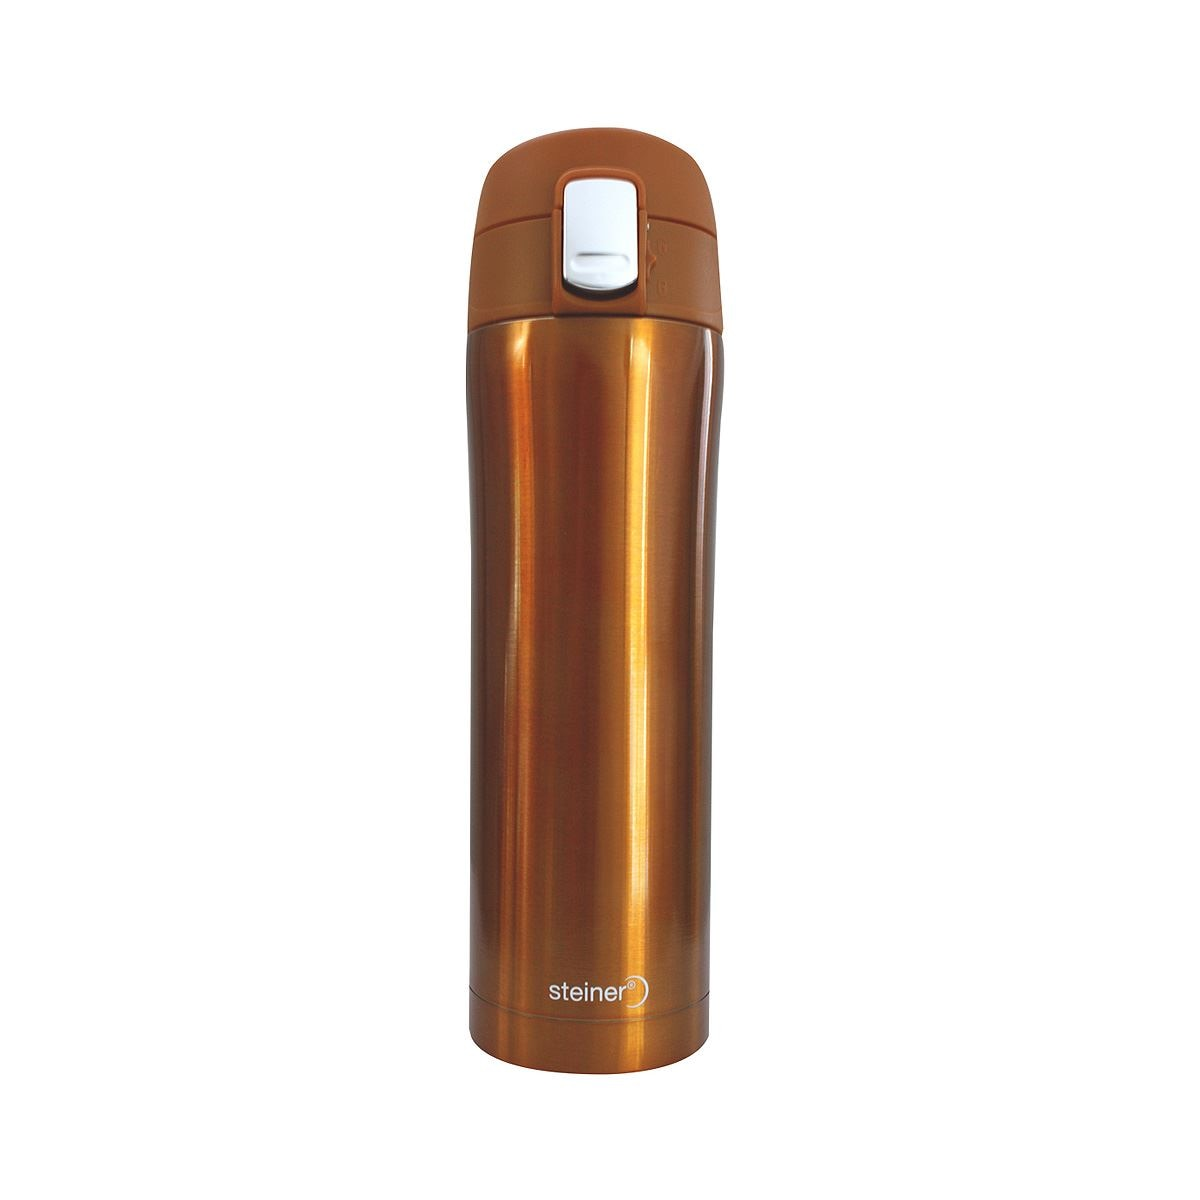 Termo steiner de acero inoxidable naranja 450ml  - Sanborns